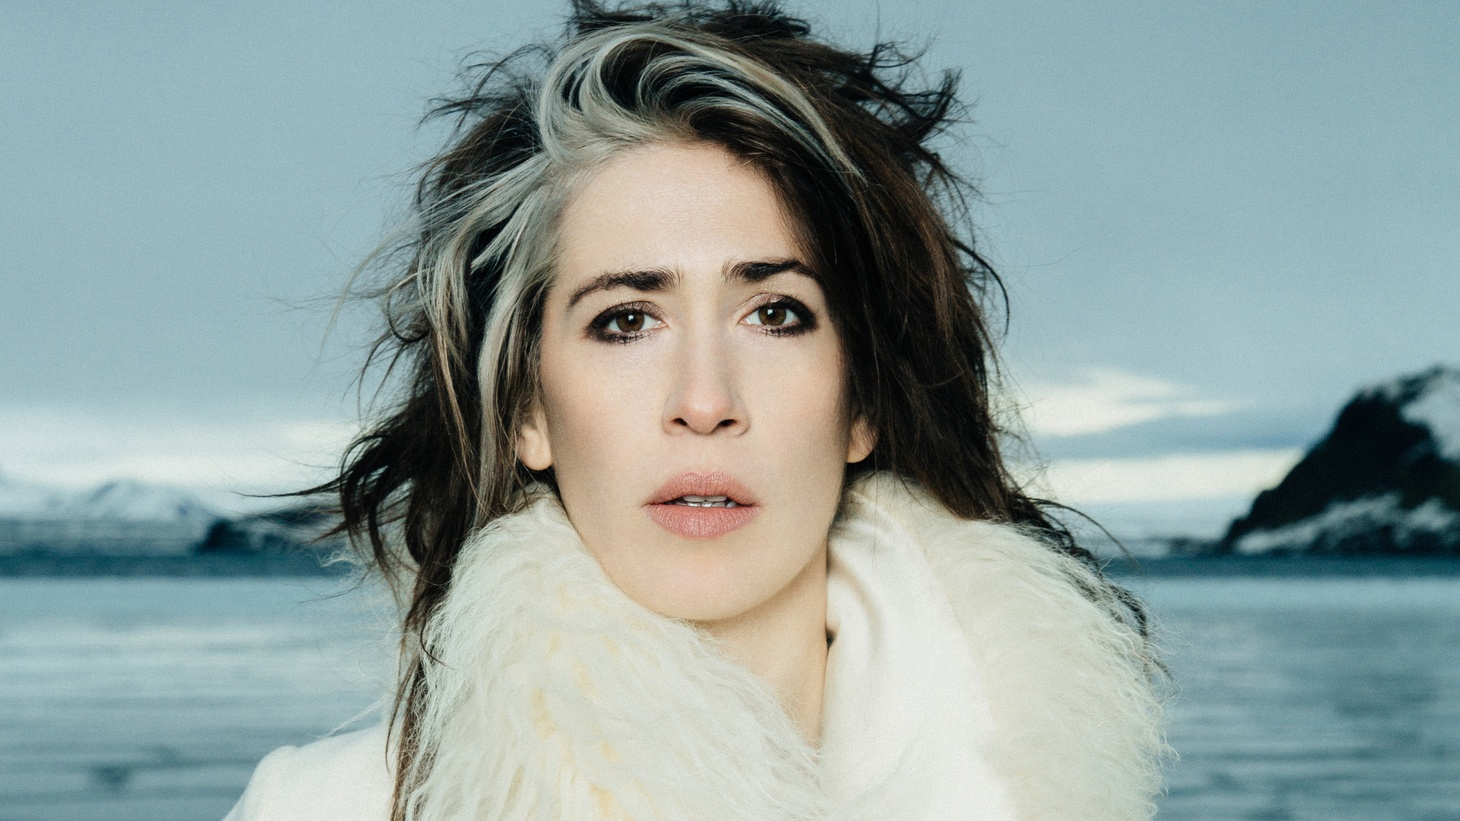 """Imogen Heap and Guy Sigsworth return as Frou Frou. We're reminded of the dynamic creative spark they ignite on """"Guitar Song (Live)."""""""